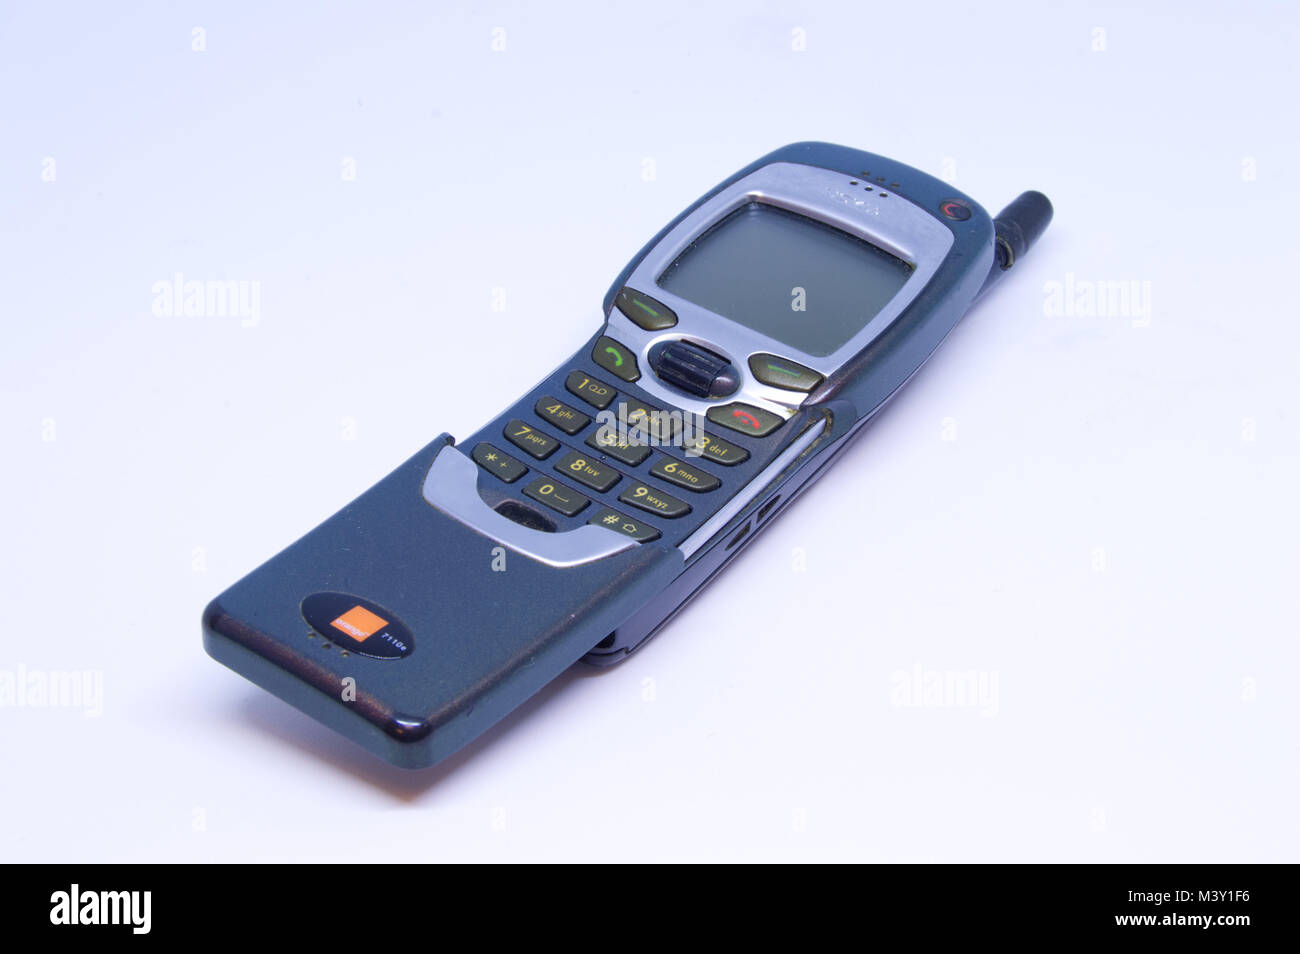 Old Nokia 7110 Mobile Phone With Flip Keypad Pictured Against A White Stock Photo Alamy